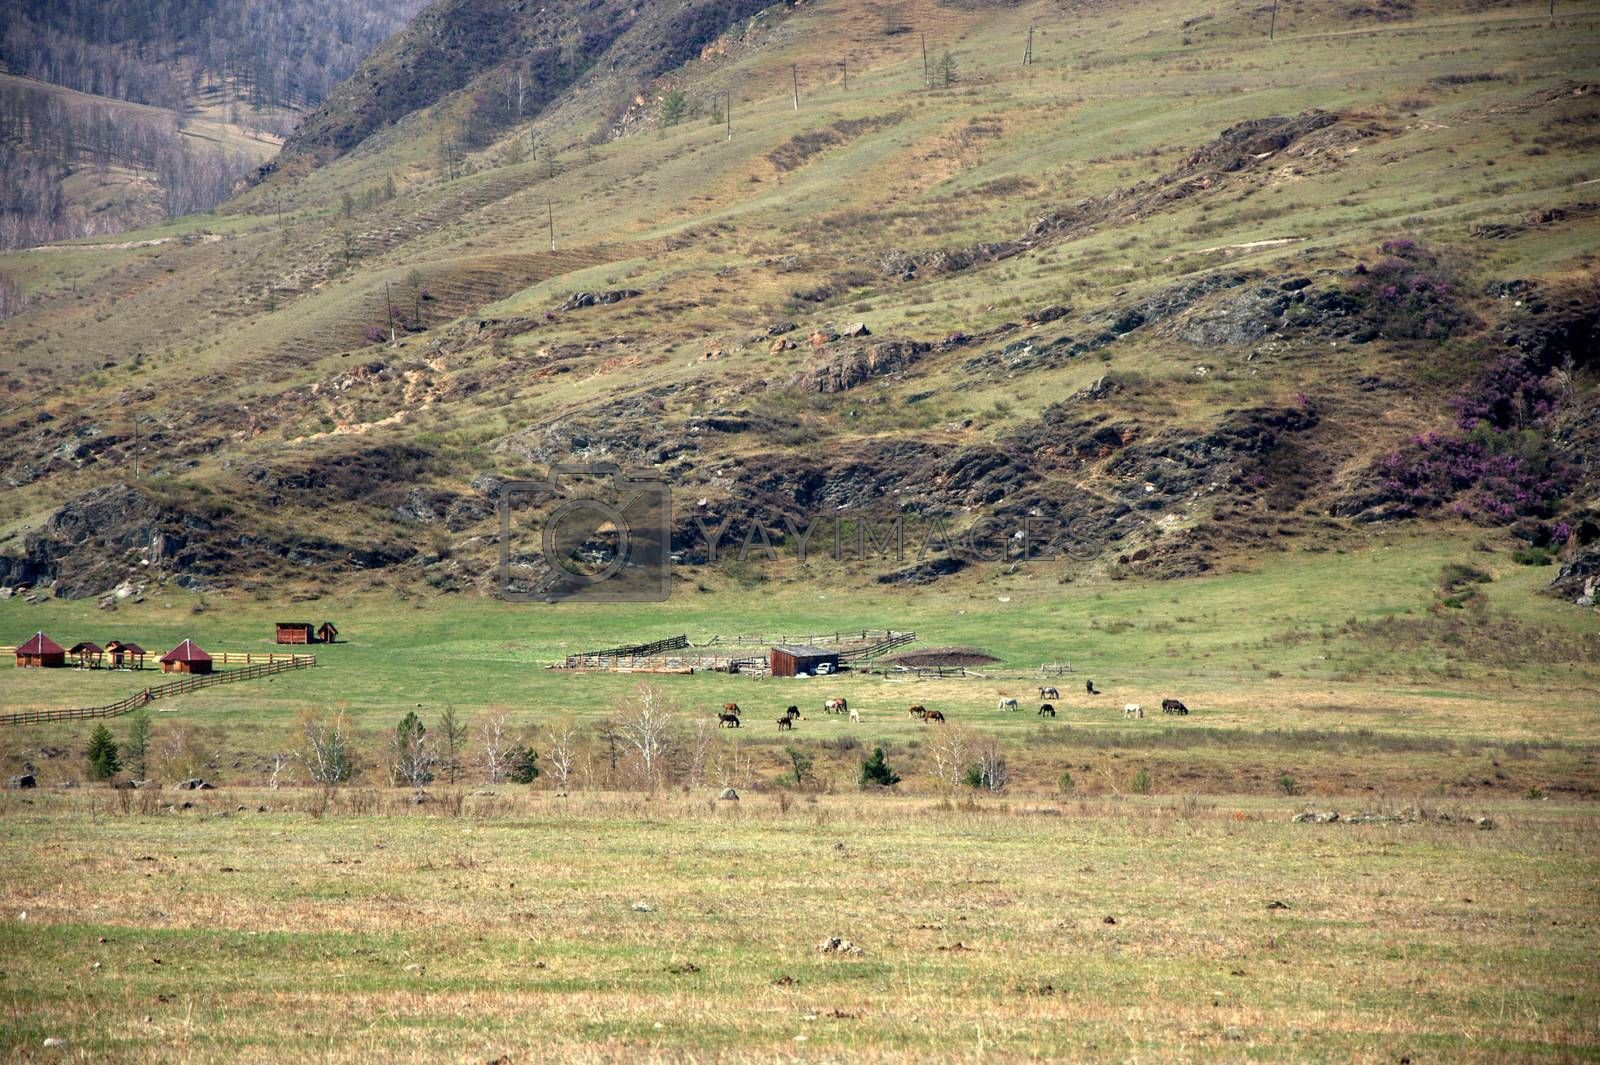 Fertile field of grass at the foot of a high mountain. Altai, Siberia, Russia.